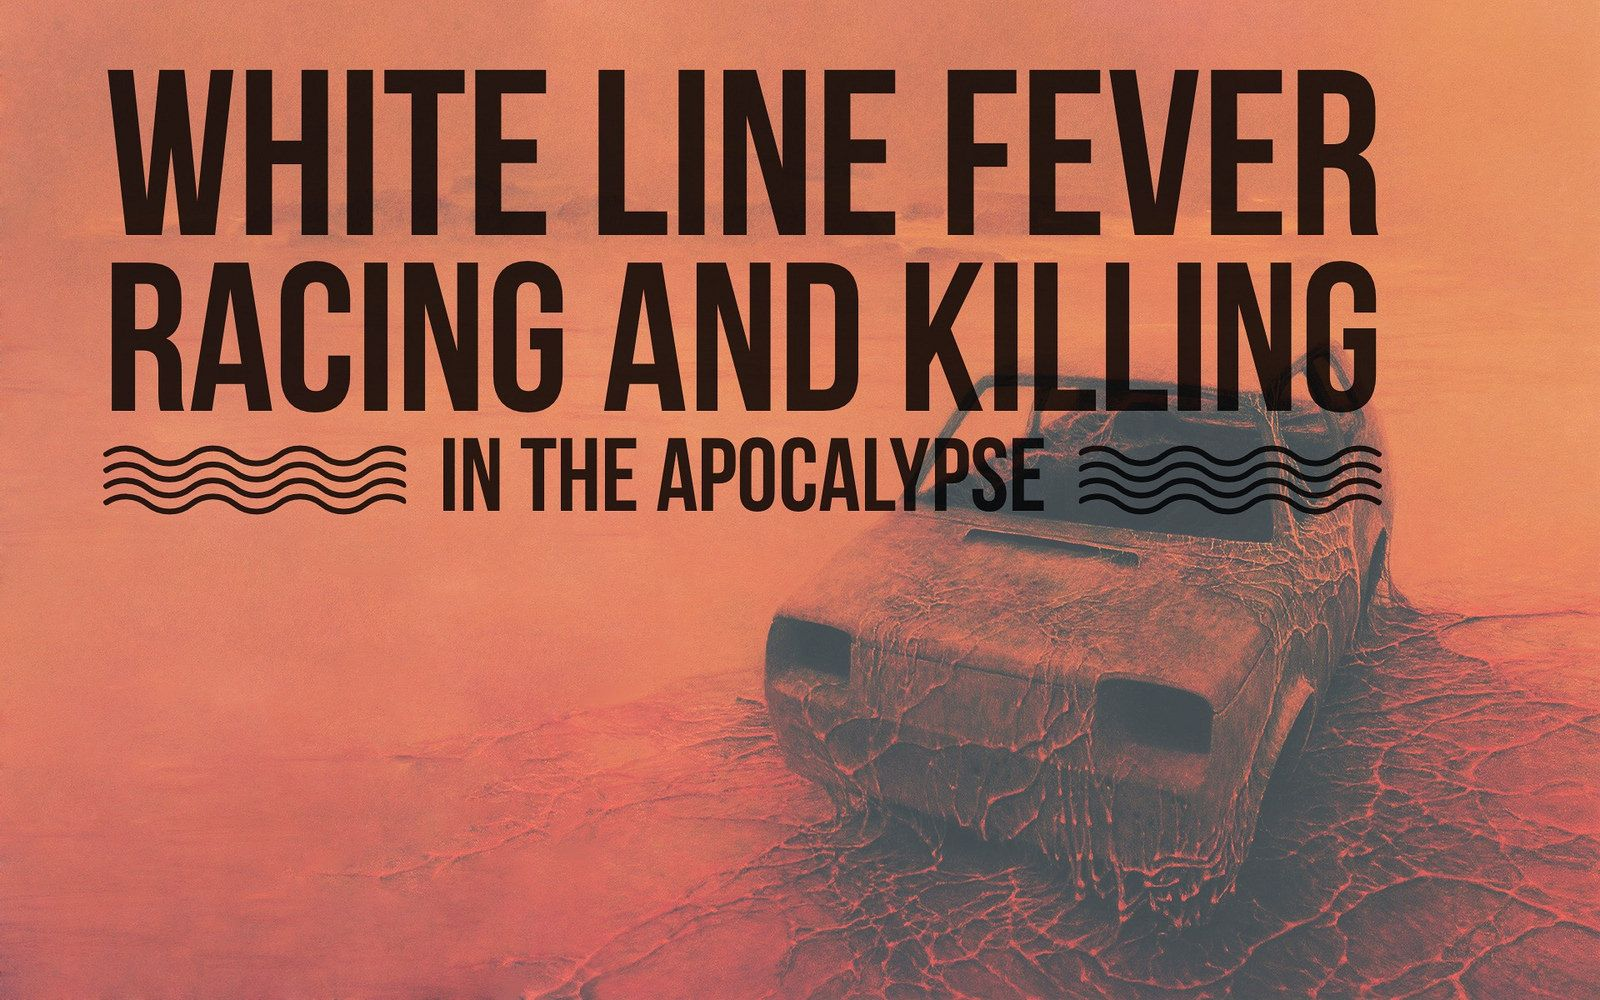 The Brooklyn Wargaming club recently ran a game of Road Warrior/White Line Fever and it appears as if they had a ripsnorting success.